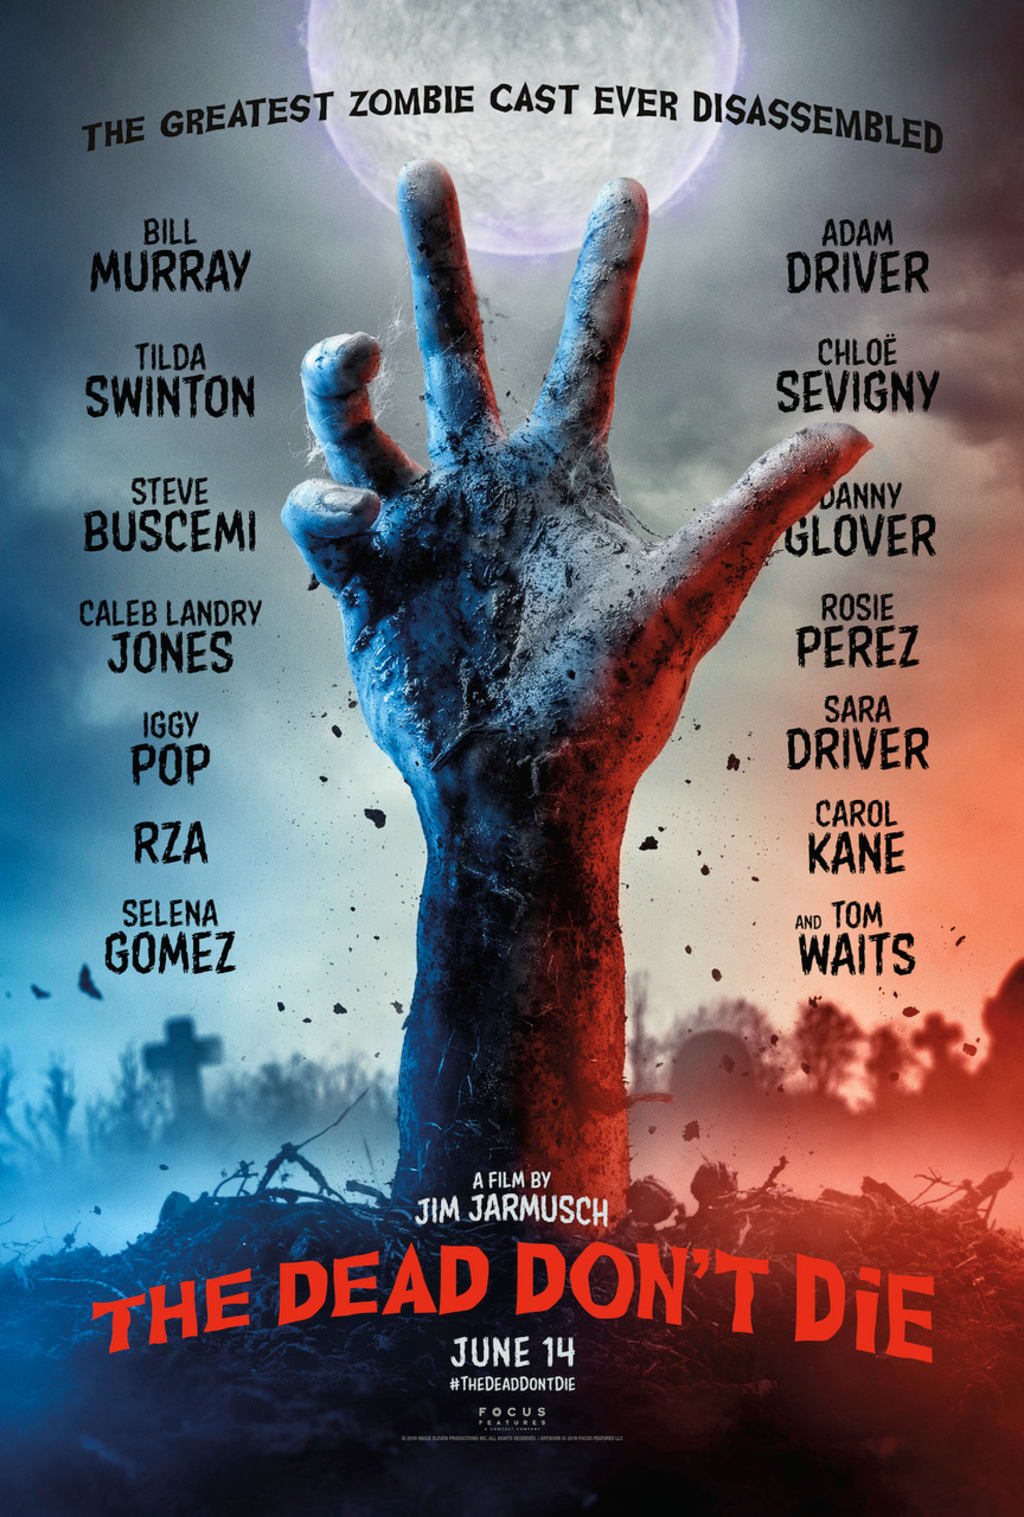 Movie Review: 'The Dead Don't Die' Fumbles as Zombie Satire